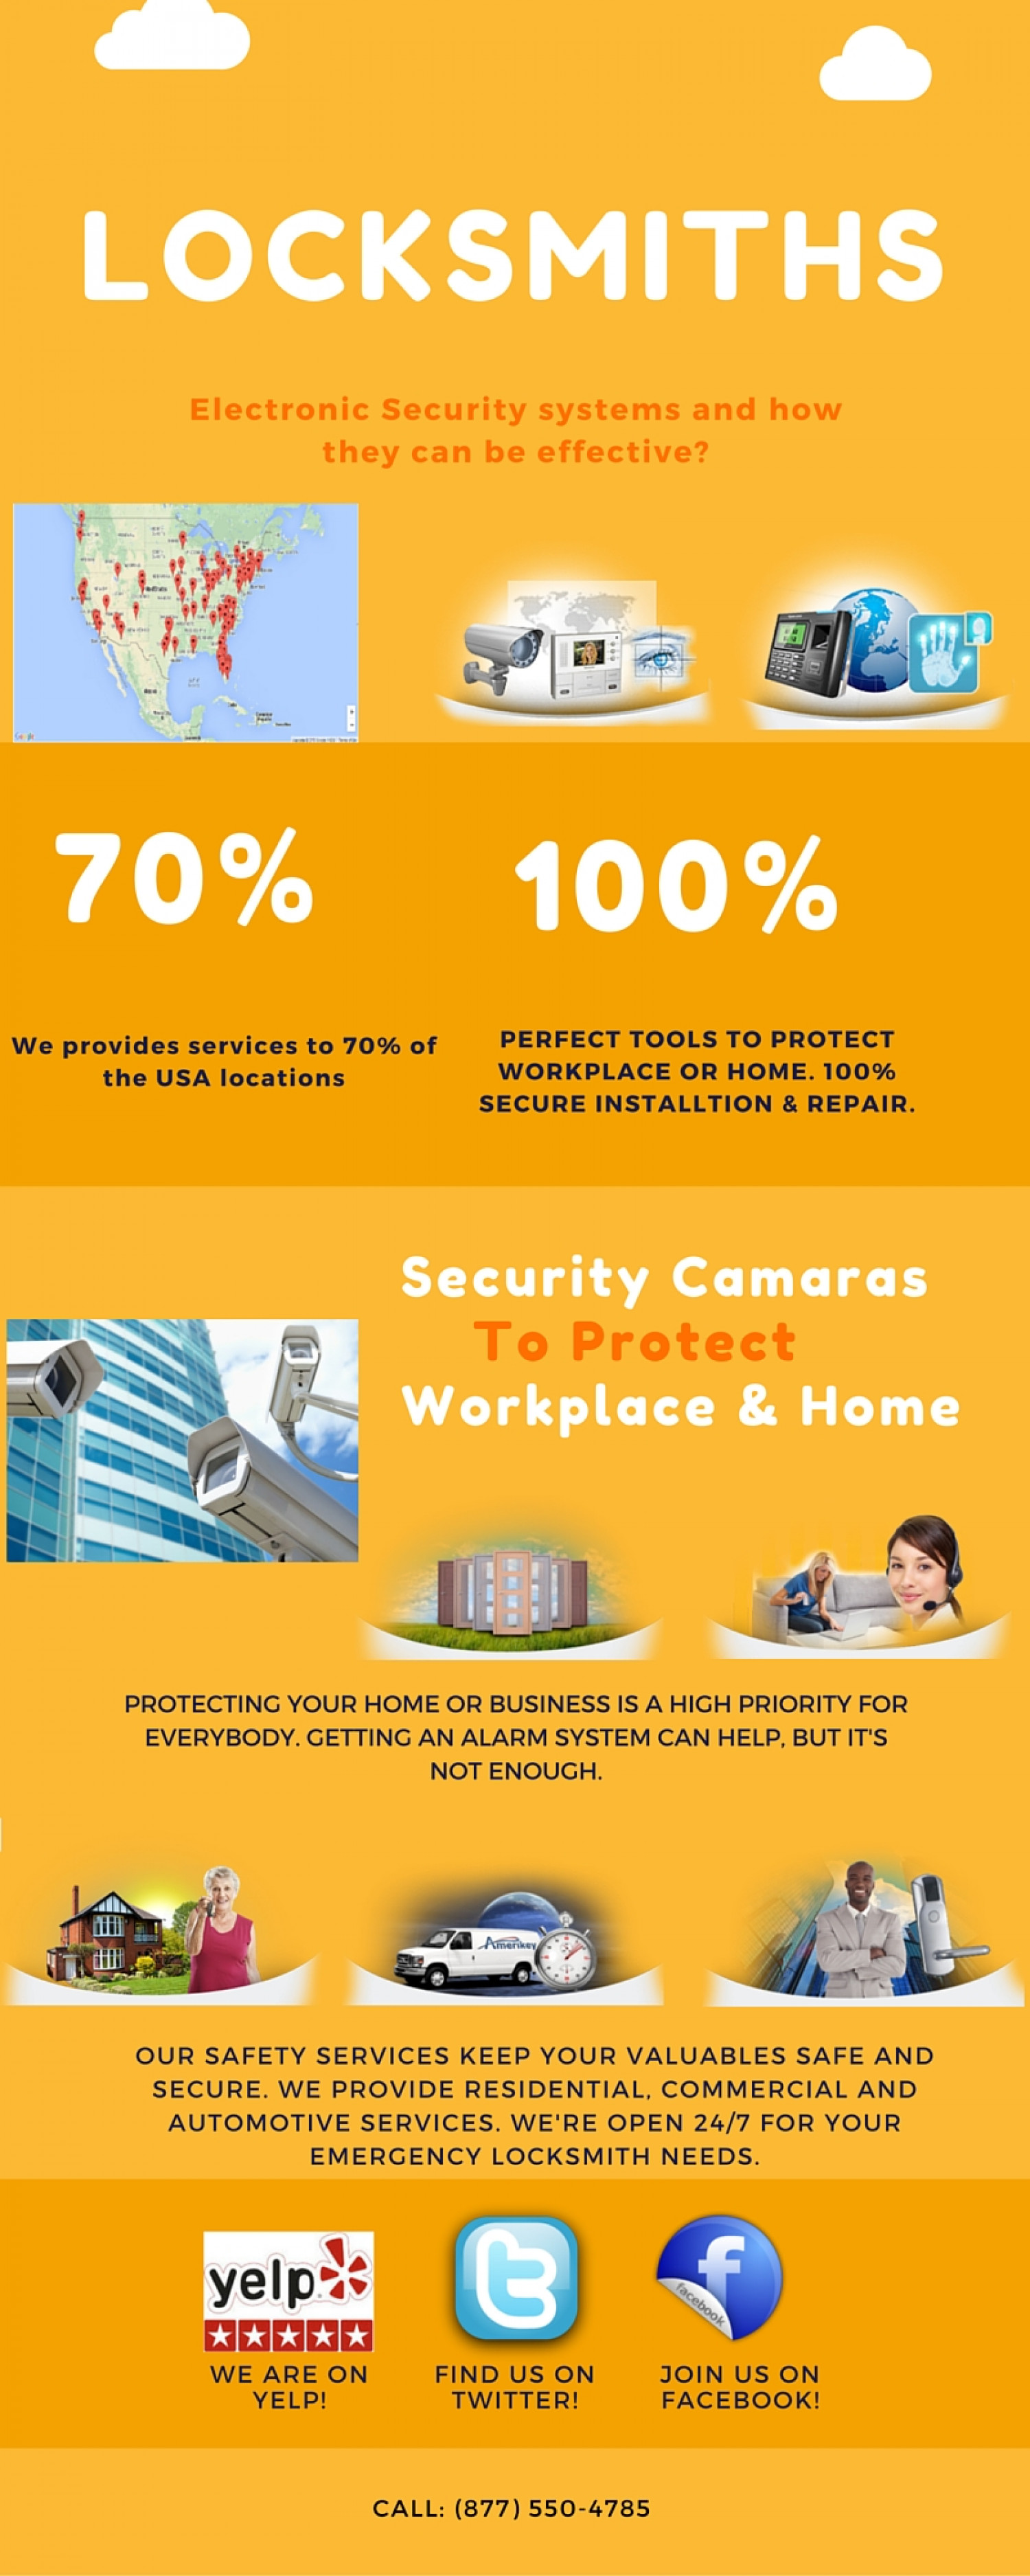 locksmiths--electronic-security-systems_